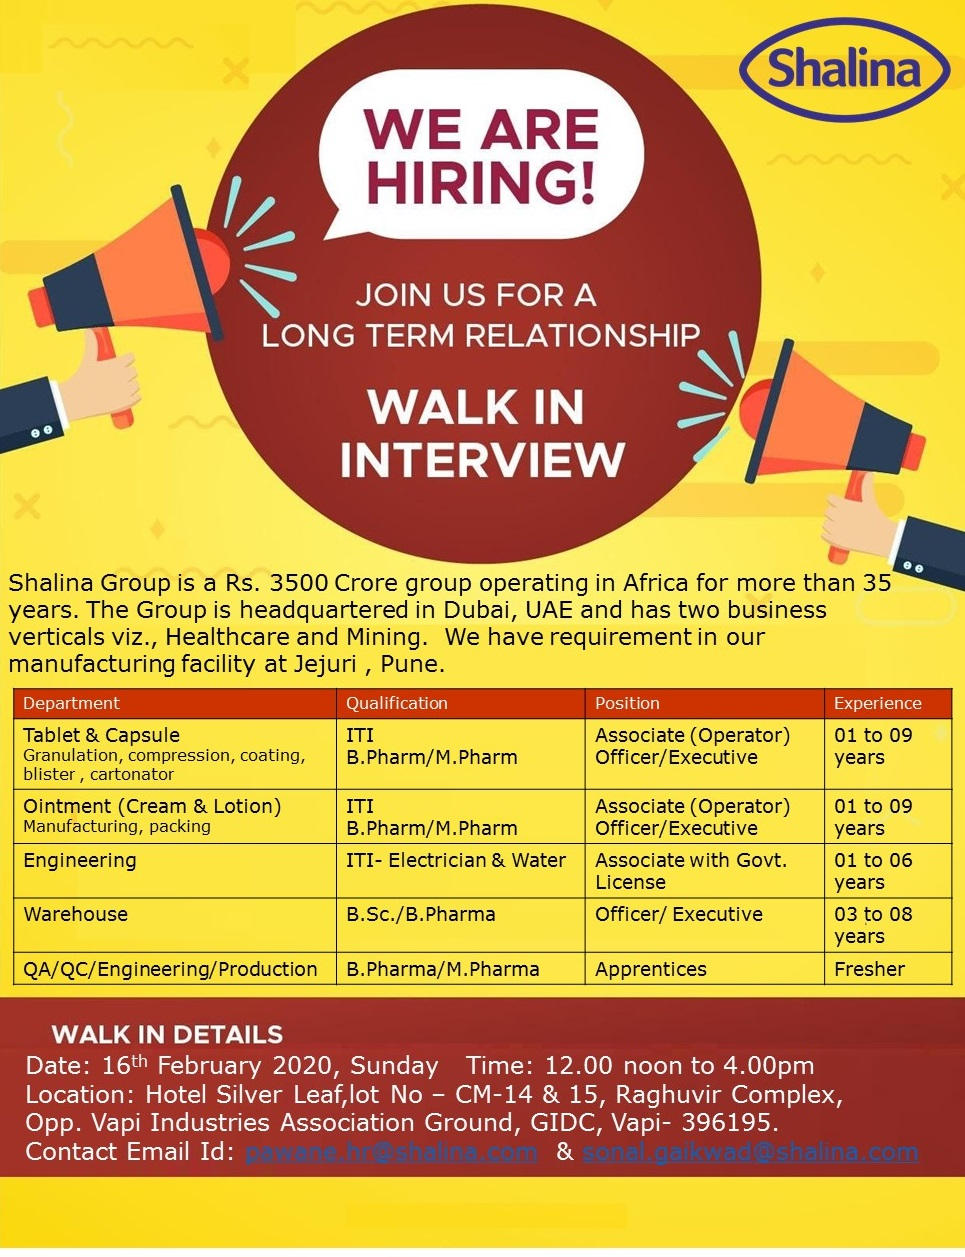 Shalina - Walk in interview for Production, QA, QC, Engineering, Warehouse - Fresher & Experienced on 16th Feb 2020